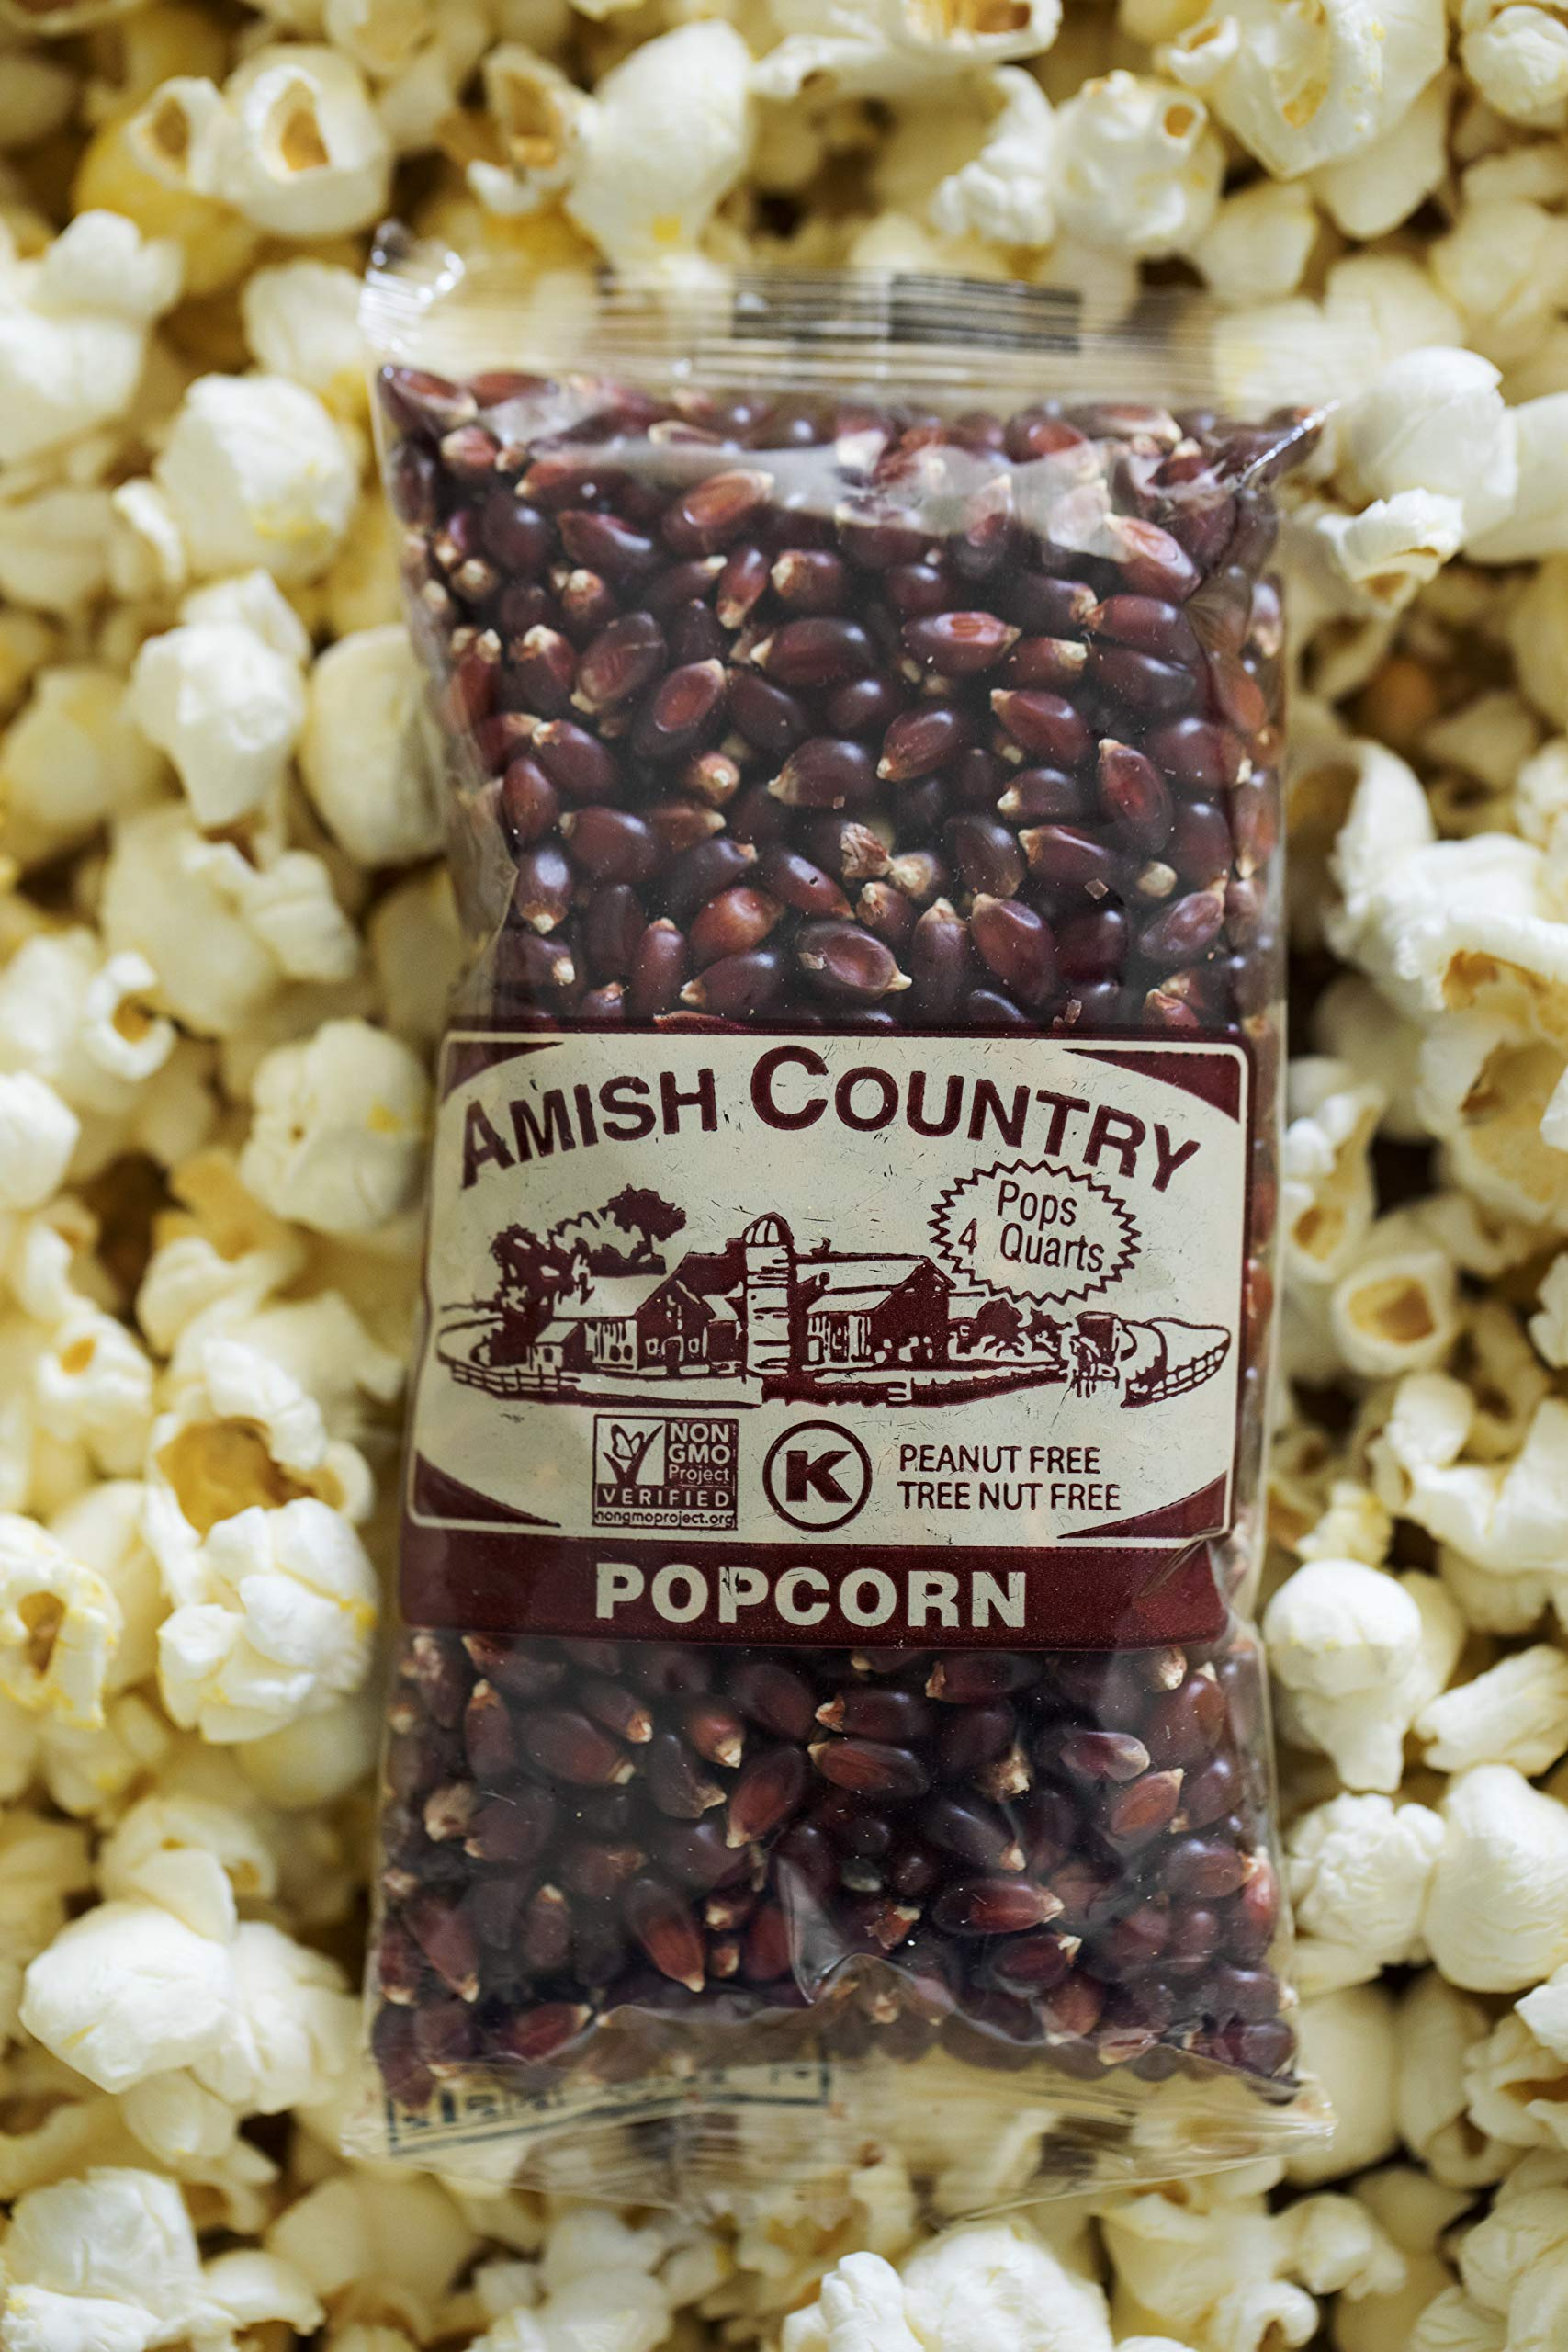 Amish Country Popcorn - Red Popcorn (4 Ounce - 24 Pack) - Old Fashioned, Non GMO, and Gluten Free - with Recipe Guide by Amish Country Popcorn (Image #5)